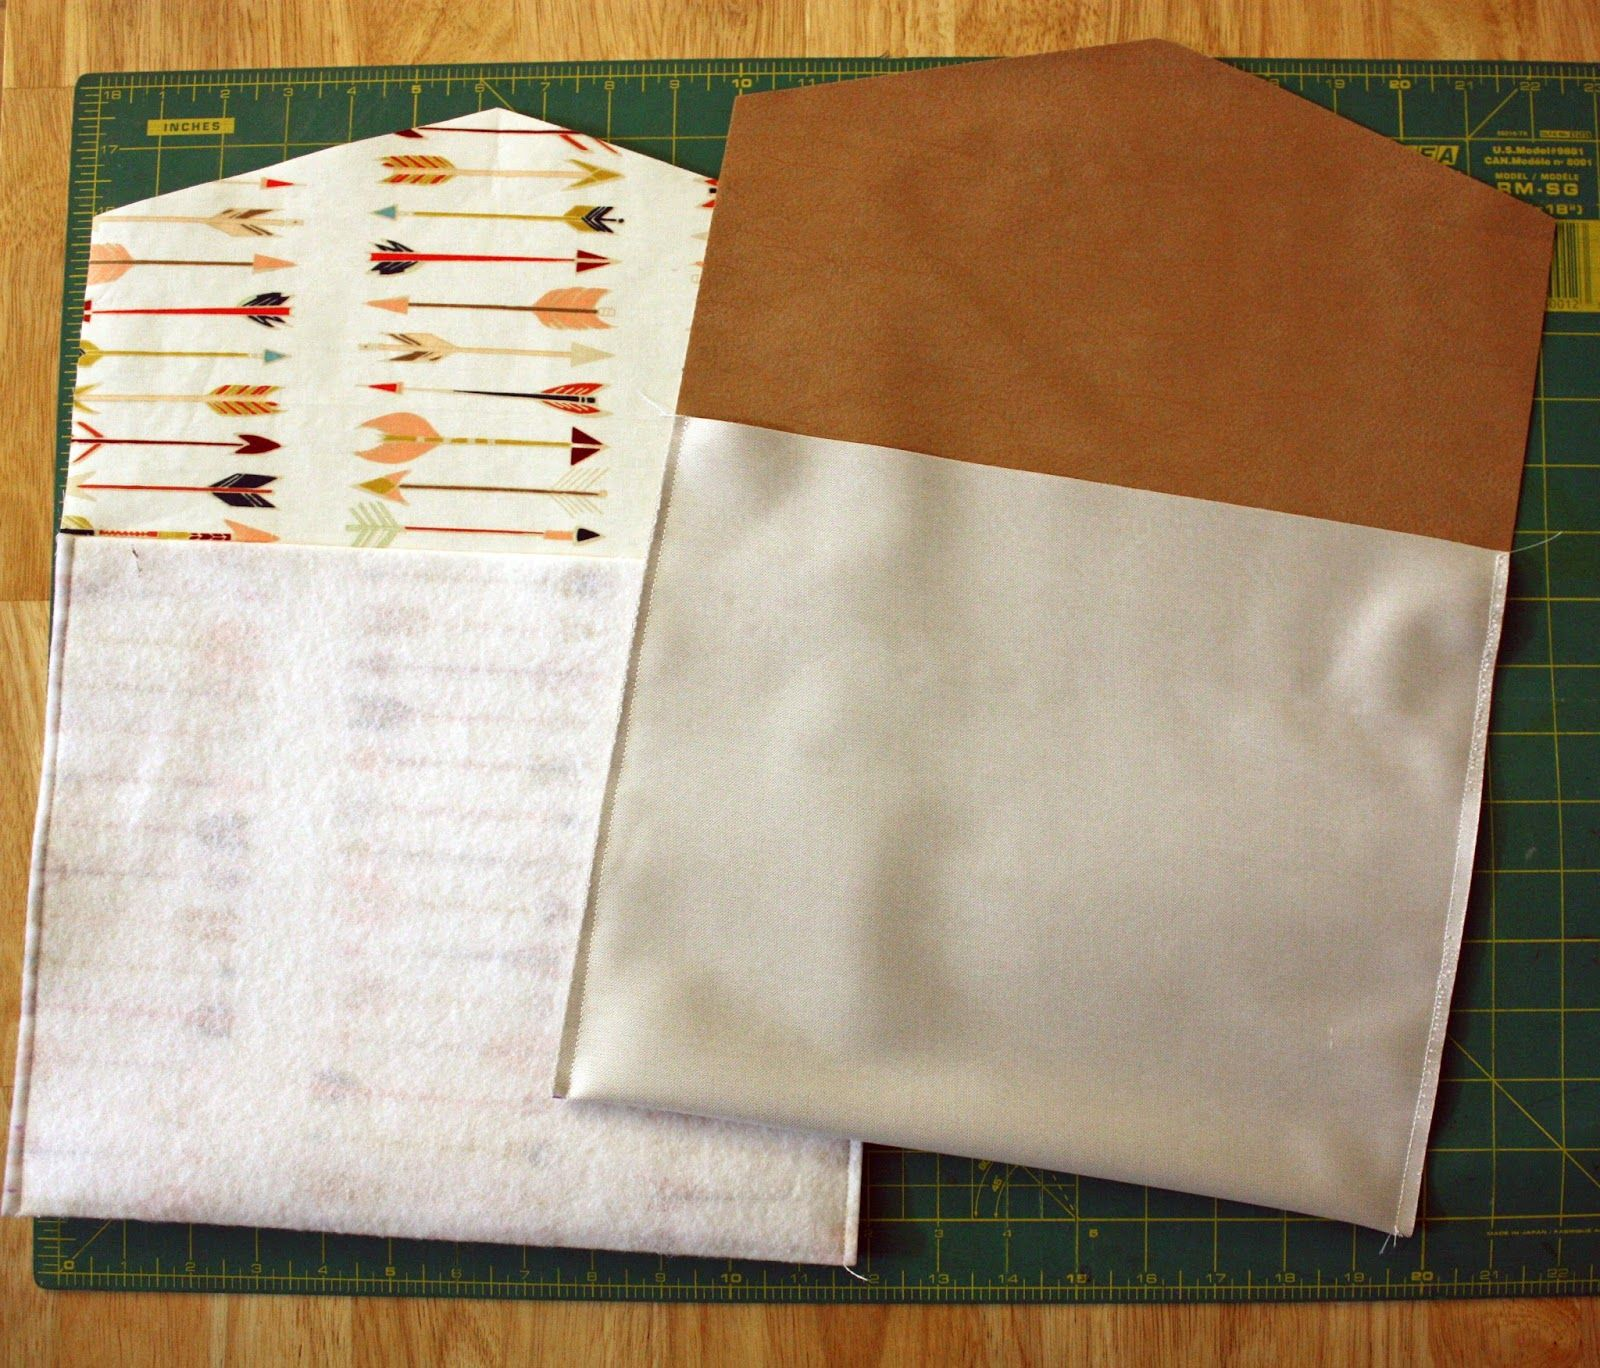 Hi everyone! This tutorial is coming to you from Holly, and I work at Fort Worth Fabric Studio, here in the home office. You can read m...